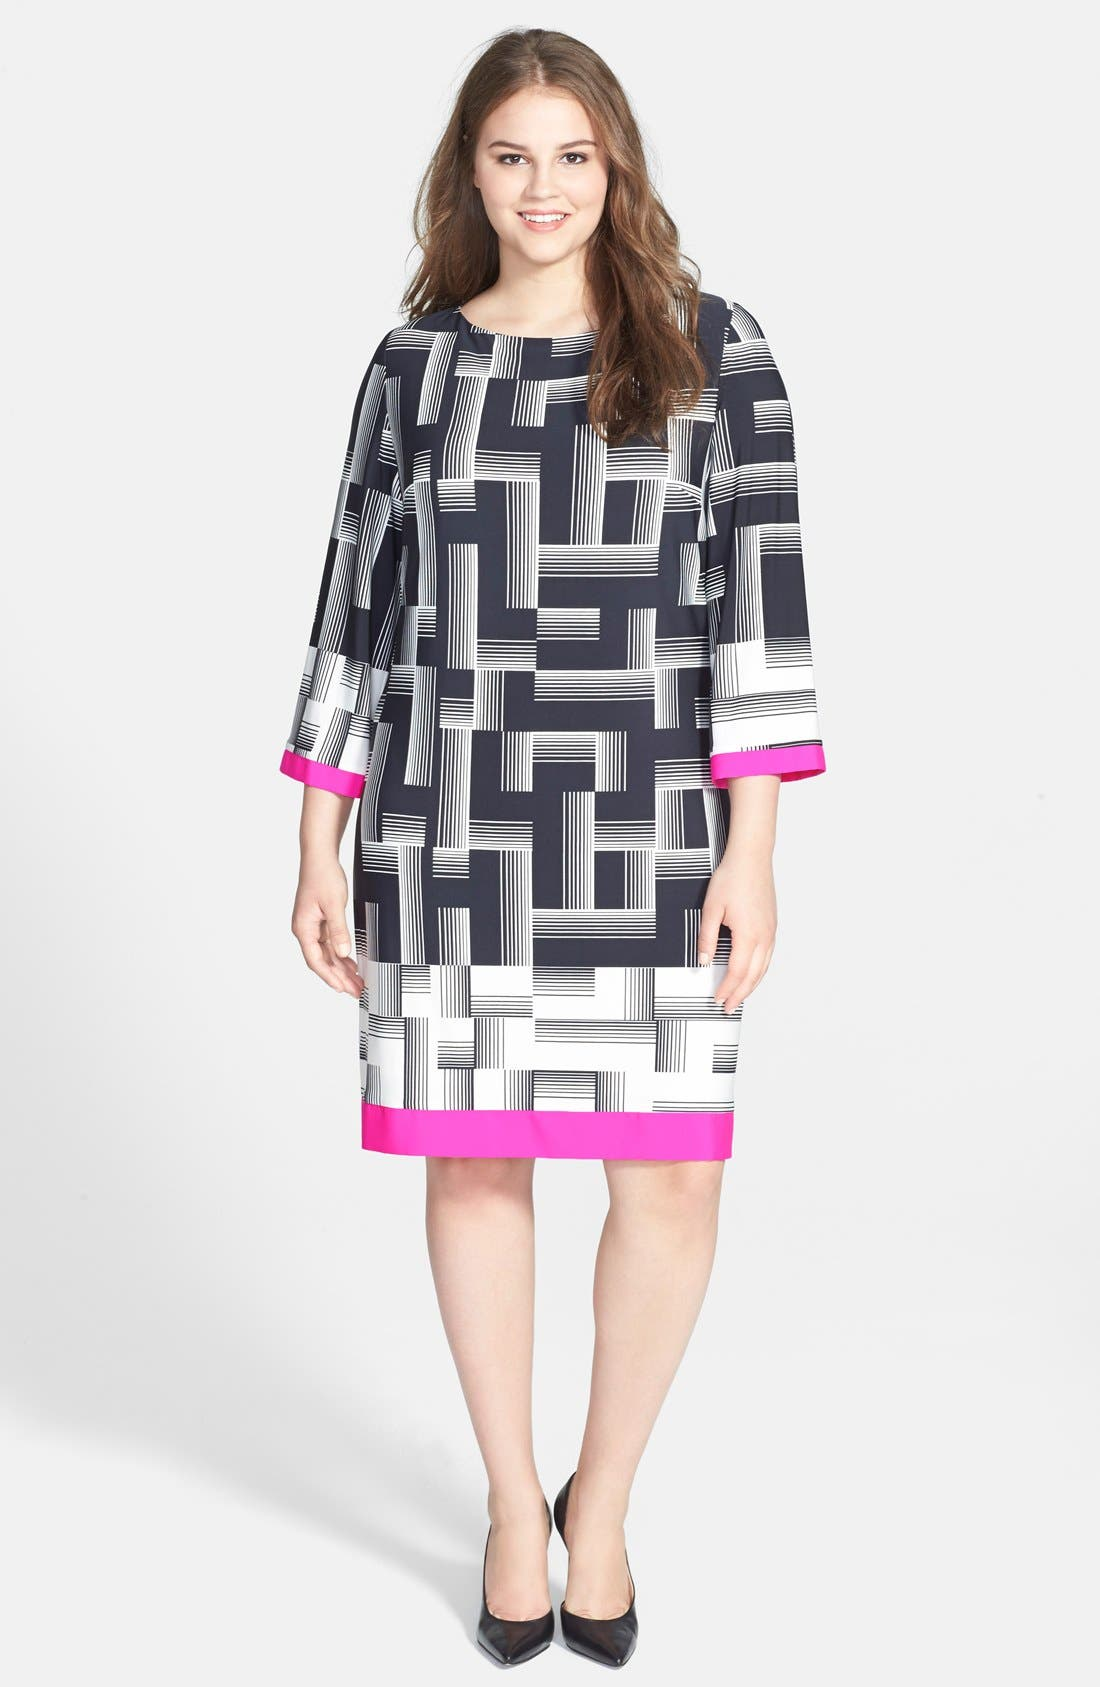 Alternate Image 1 Selected - Eliza J Print Woven Trim Sheath Dress (Plus Size) (Online Only)